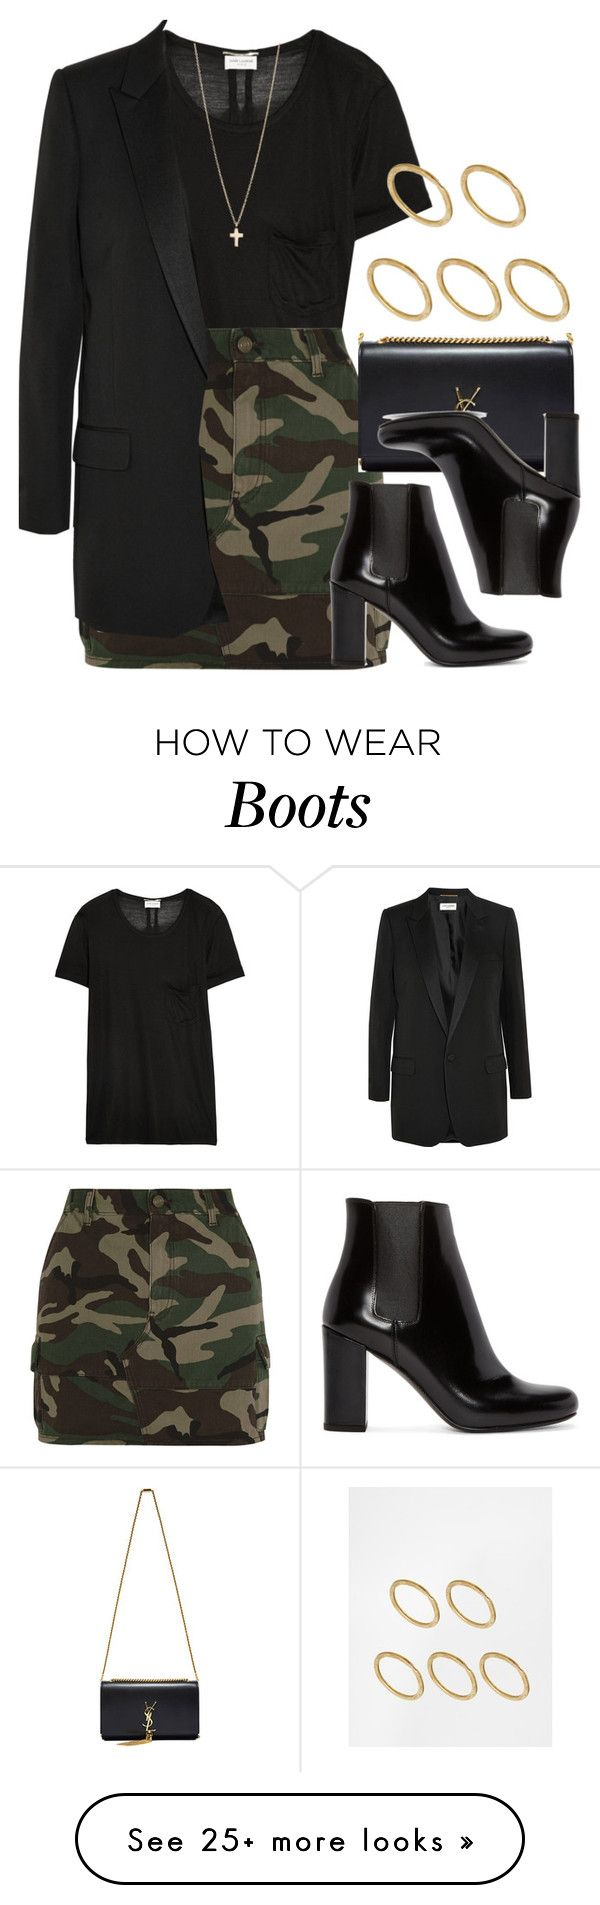 """""""Style #9788"""" by vany-alvarado on Polyvore featuring Yves Saint Laurent, Made, Minor Obsessions, women's clothing, women, female, woman, misses and juniors"""